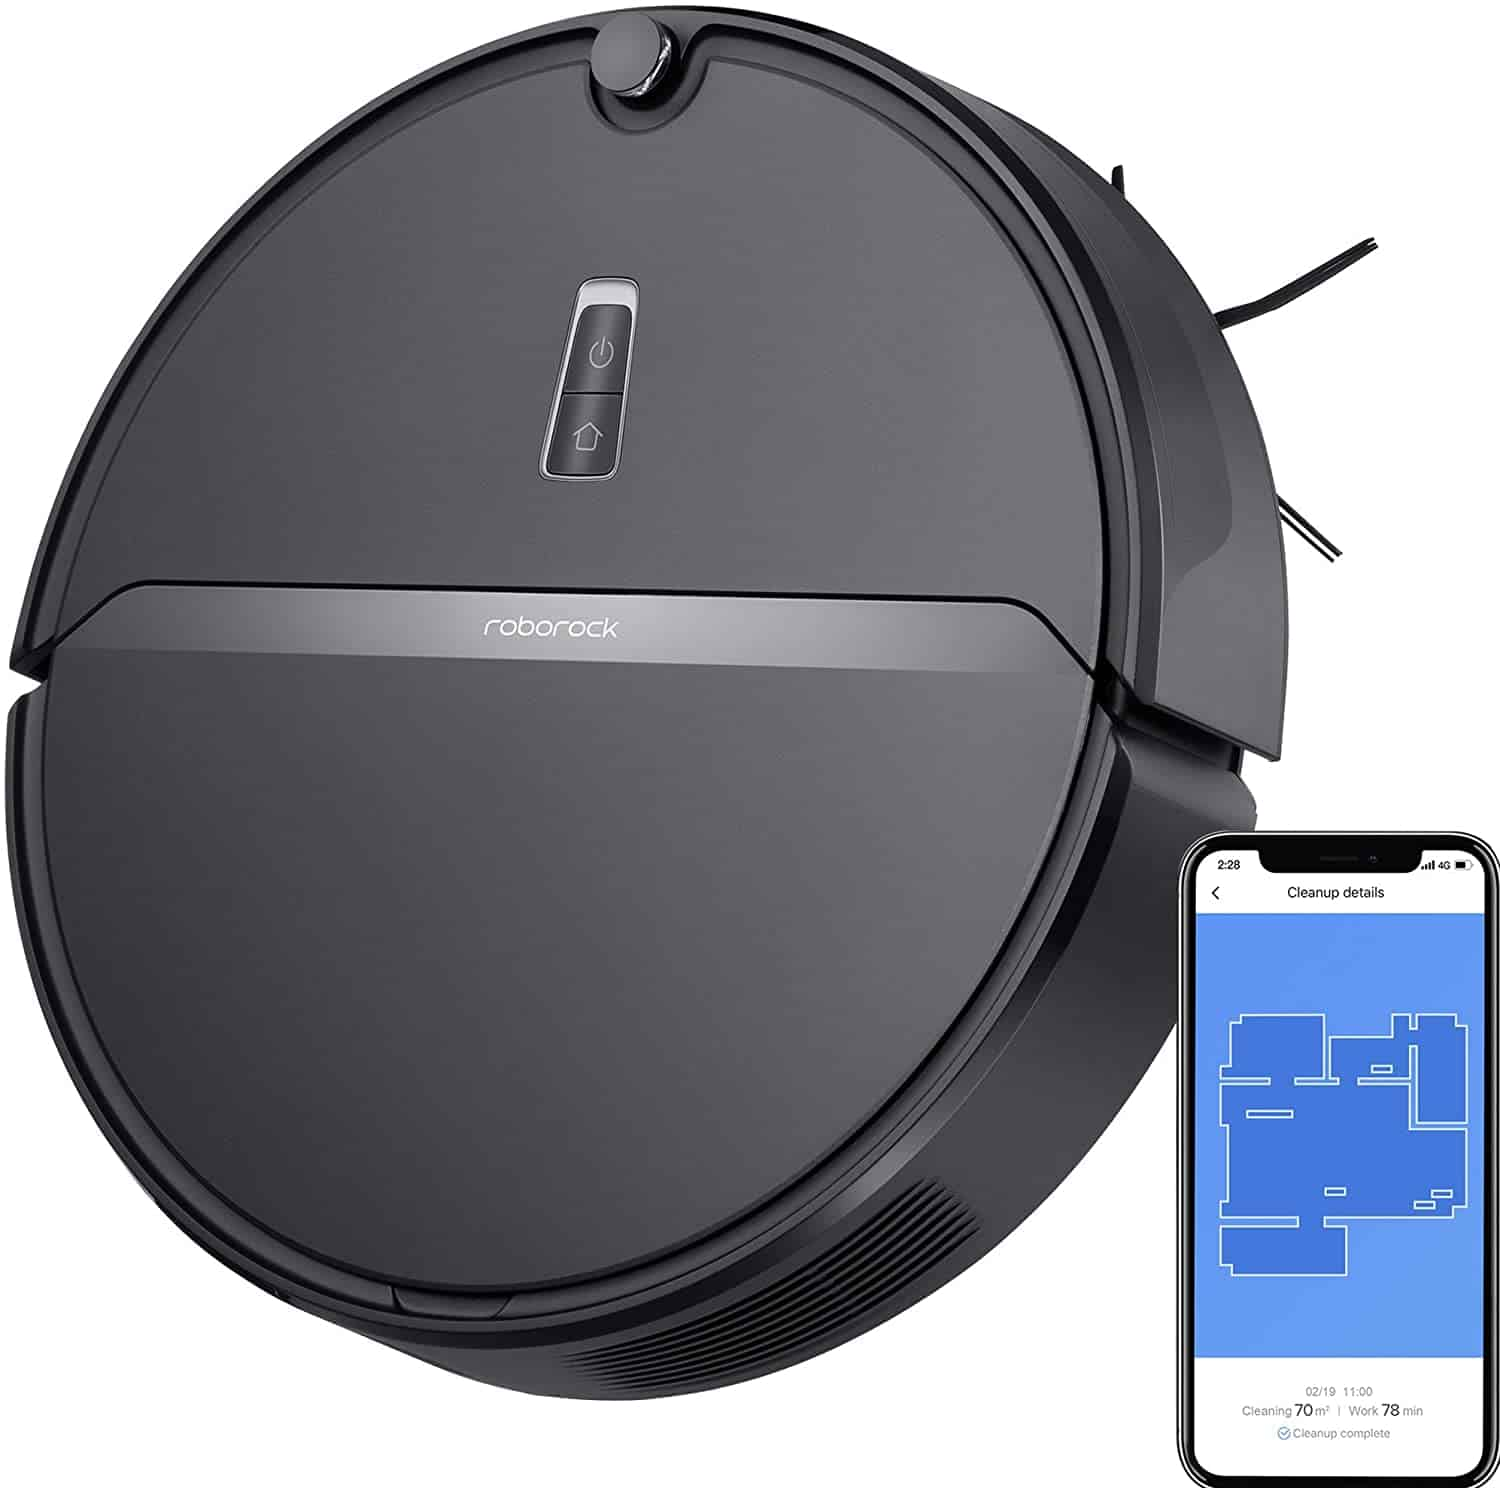 Roborock E4 Robot Vacuum Cleaner - Amazon